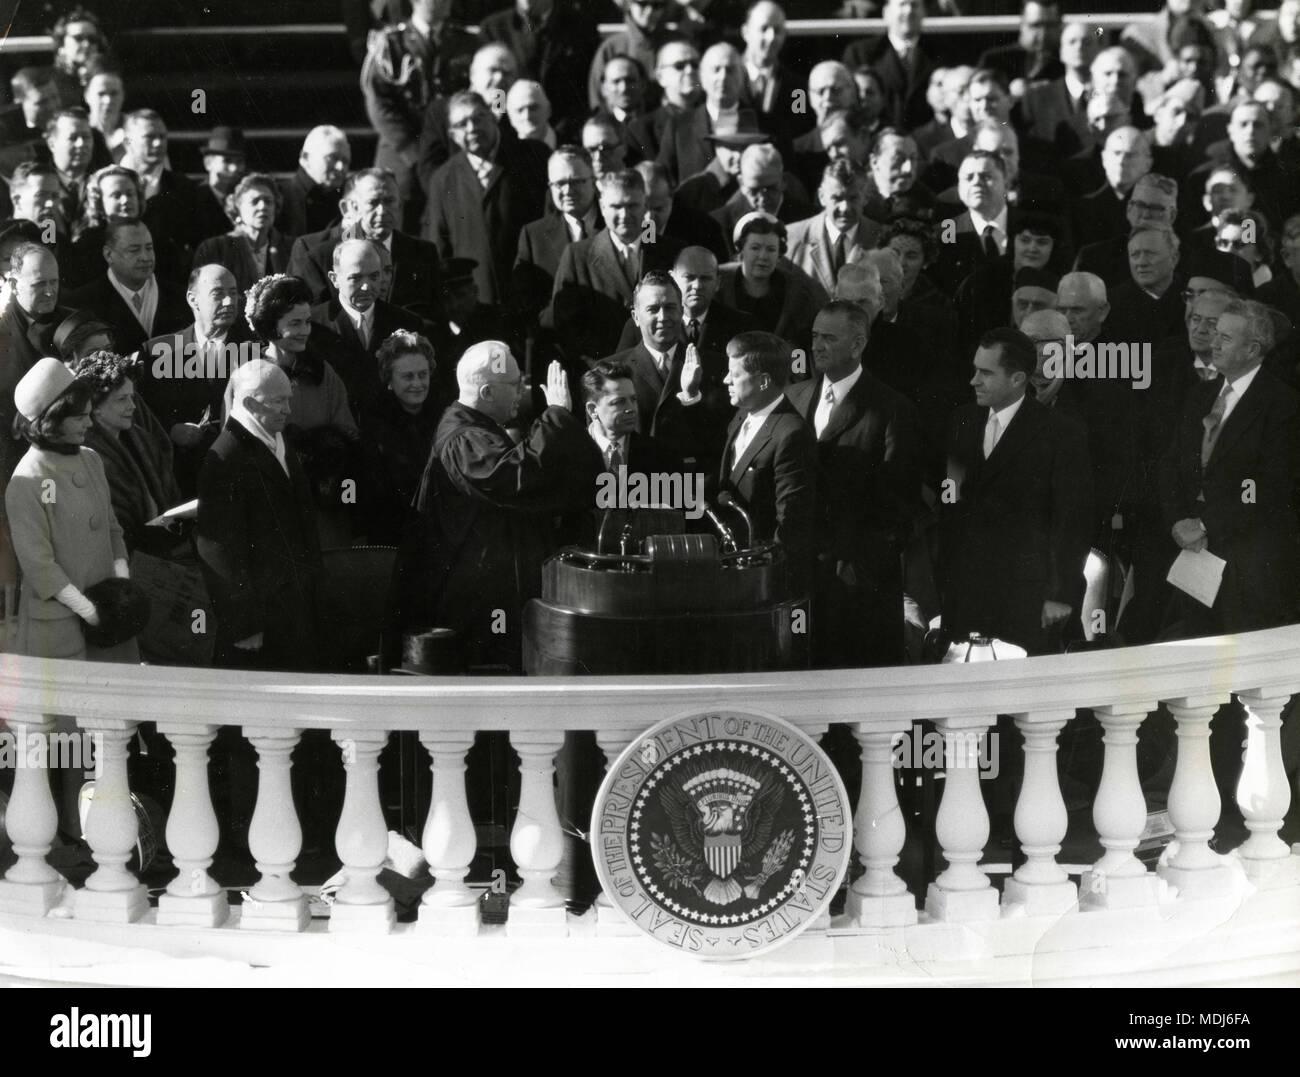 US President John F. Kennedy swearing to Earl Warren, USA 1961 - Stock Image